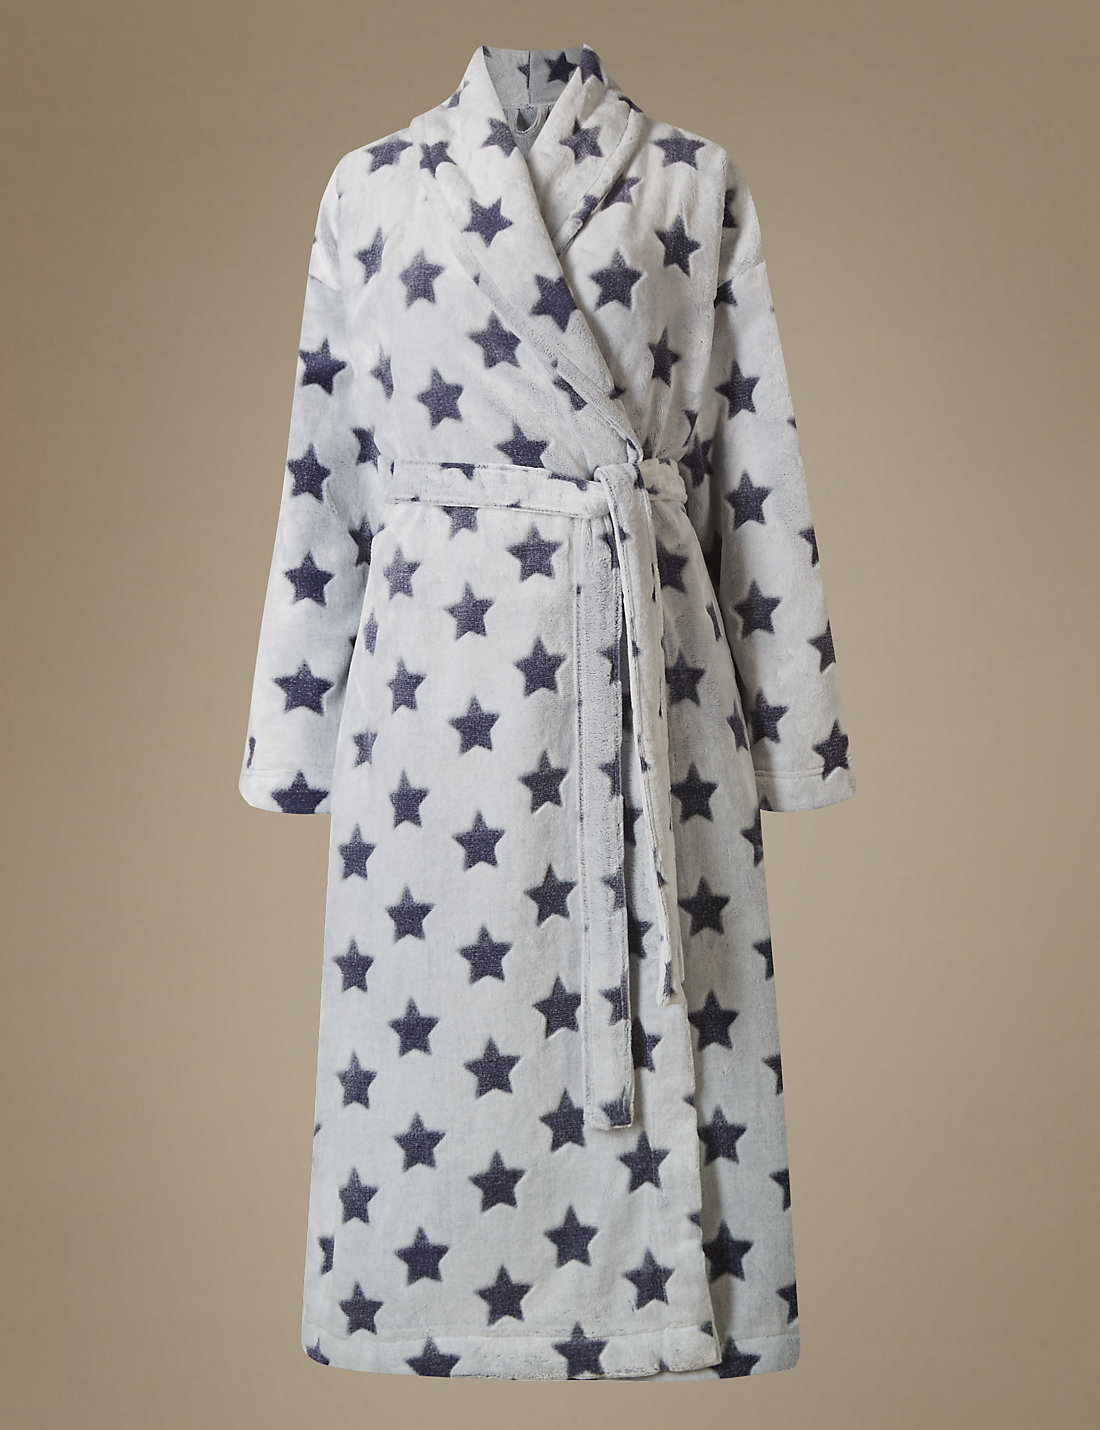 Lovely Dressing Gowns Marks And Spencer Ideas - Images for wedding ...